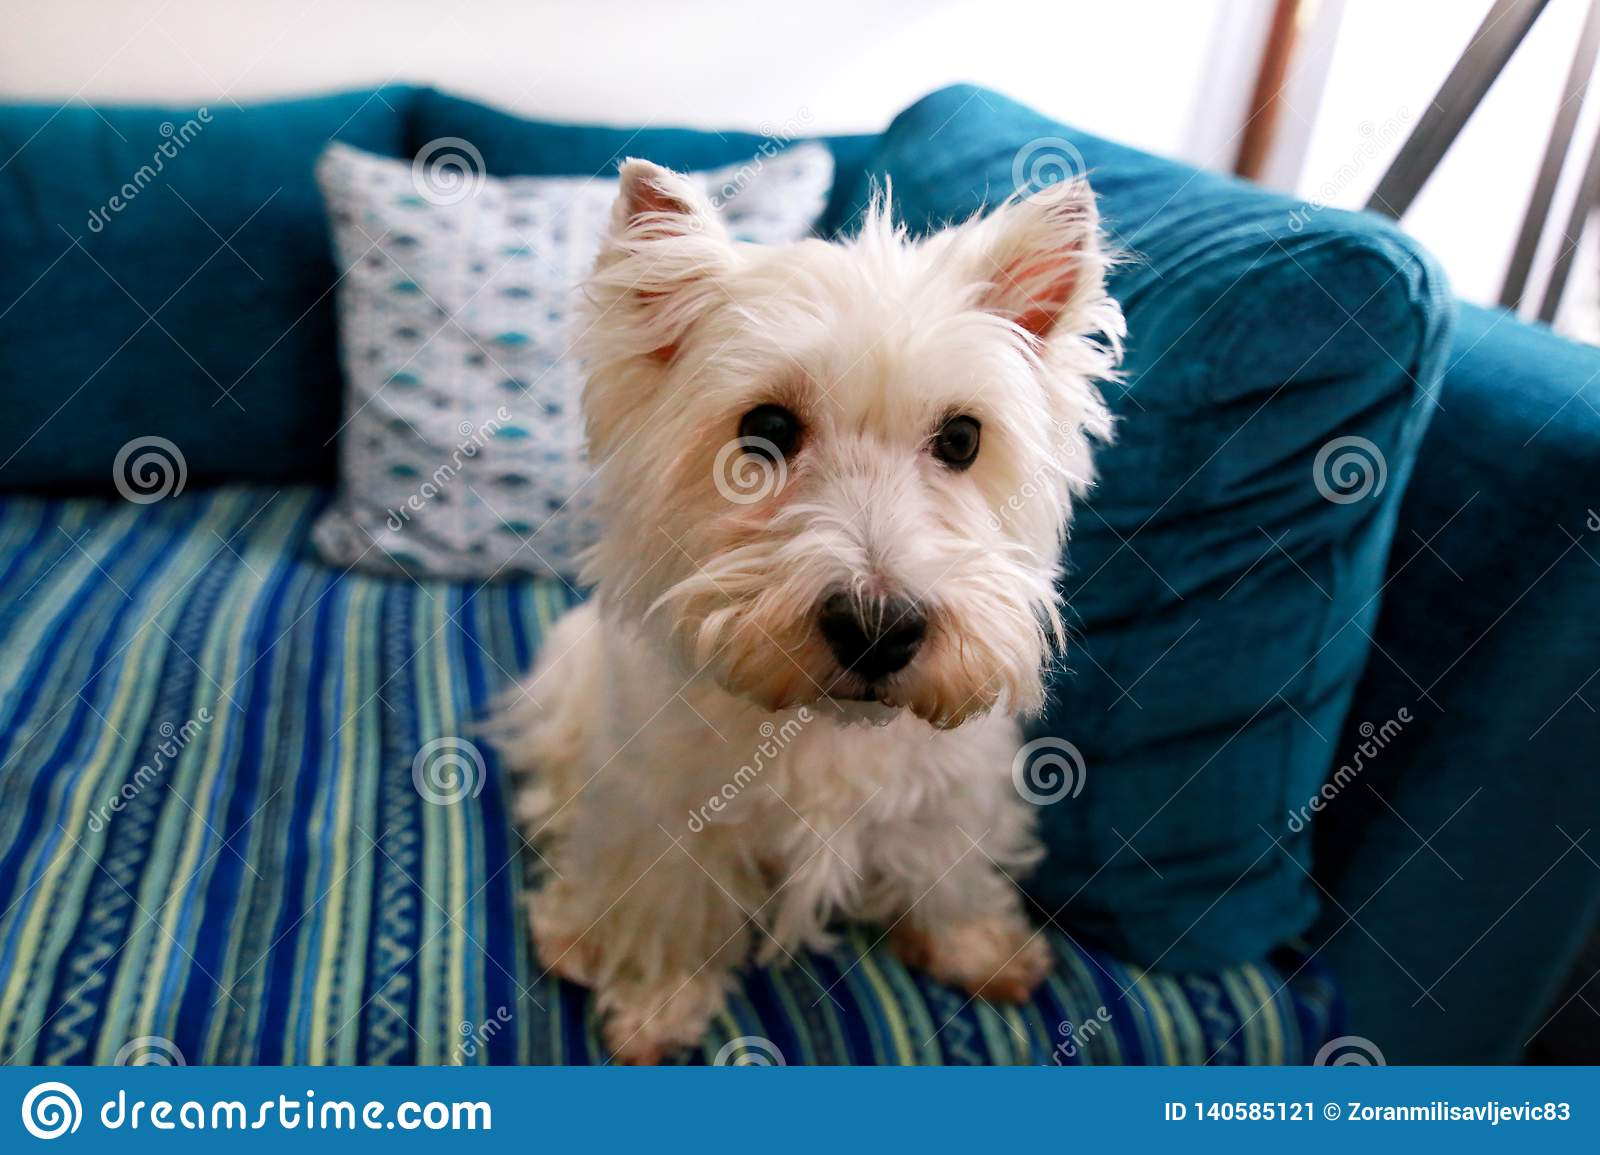 Dog photo shoot at home. Pet portrait of West Highland White Terrier dog lying and sitting on bed and blue blanket couch at house.